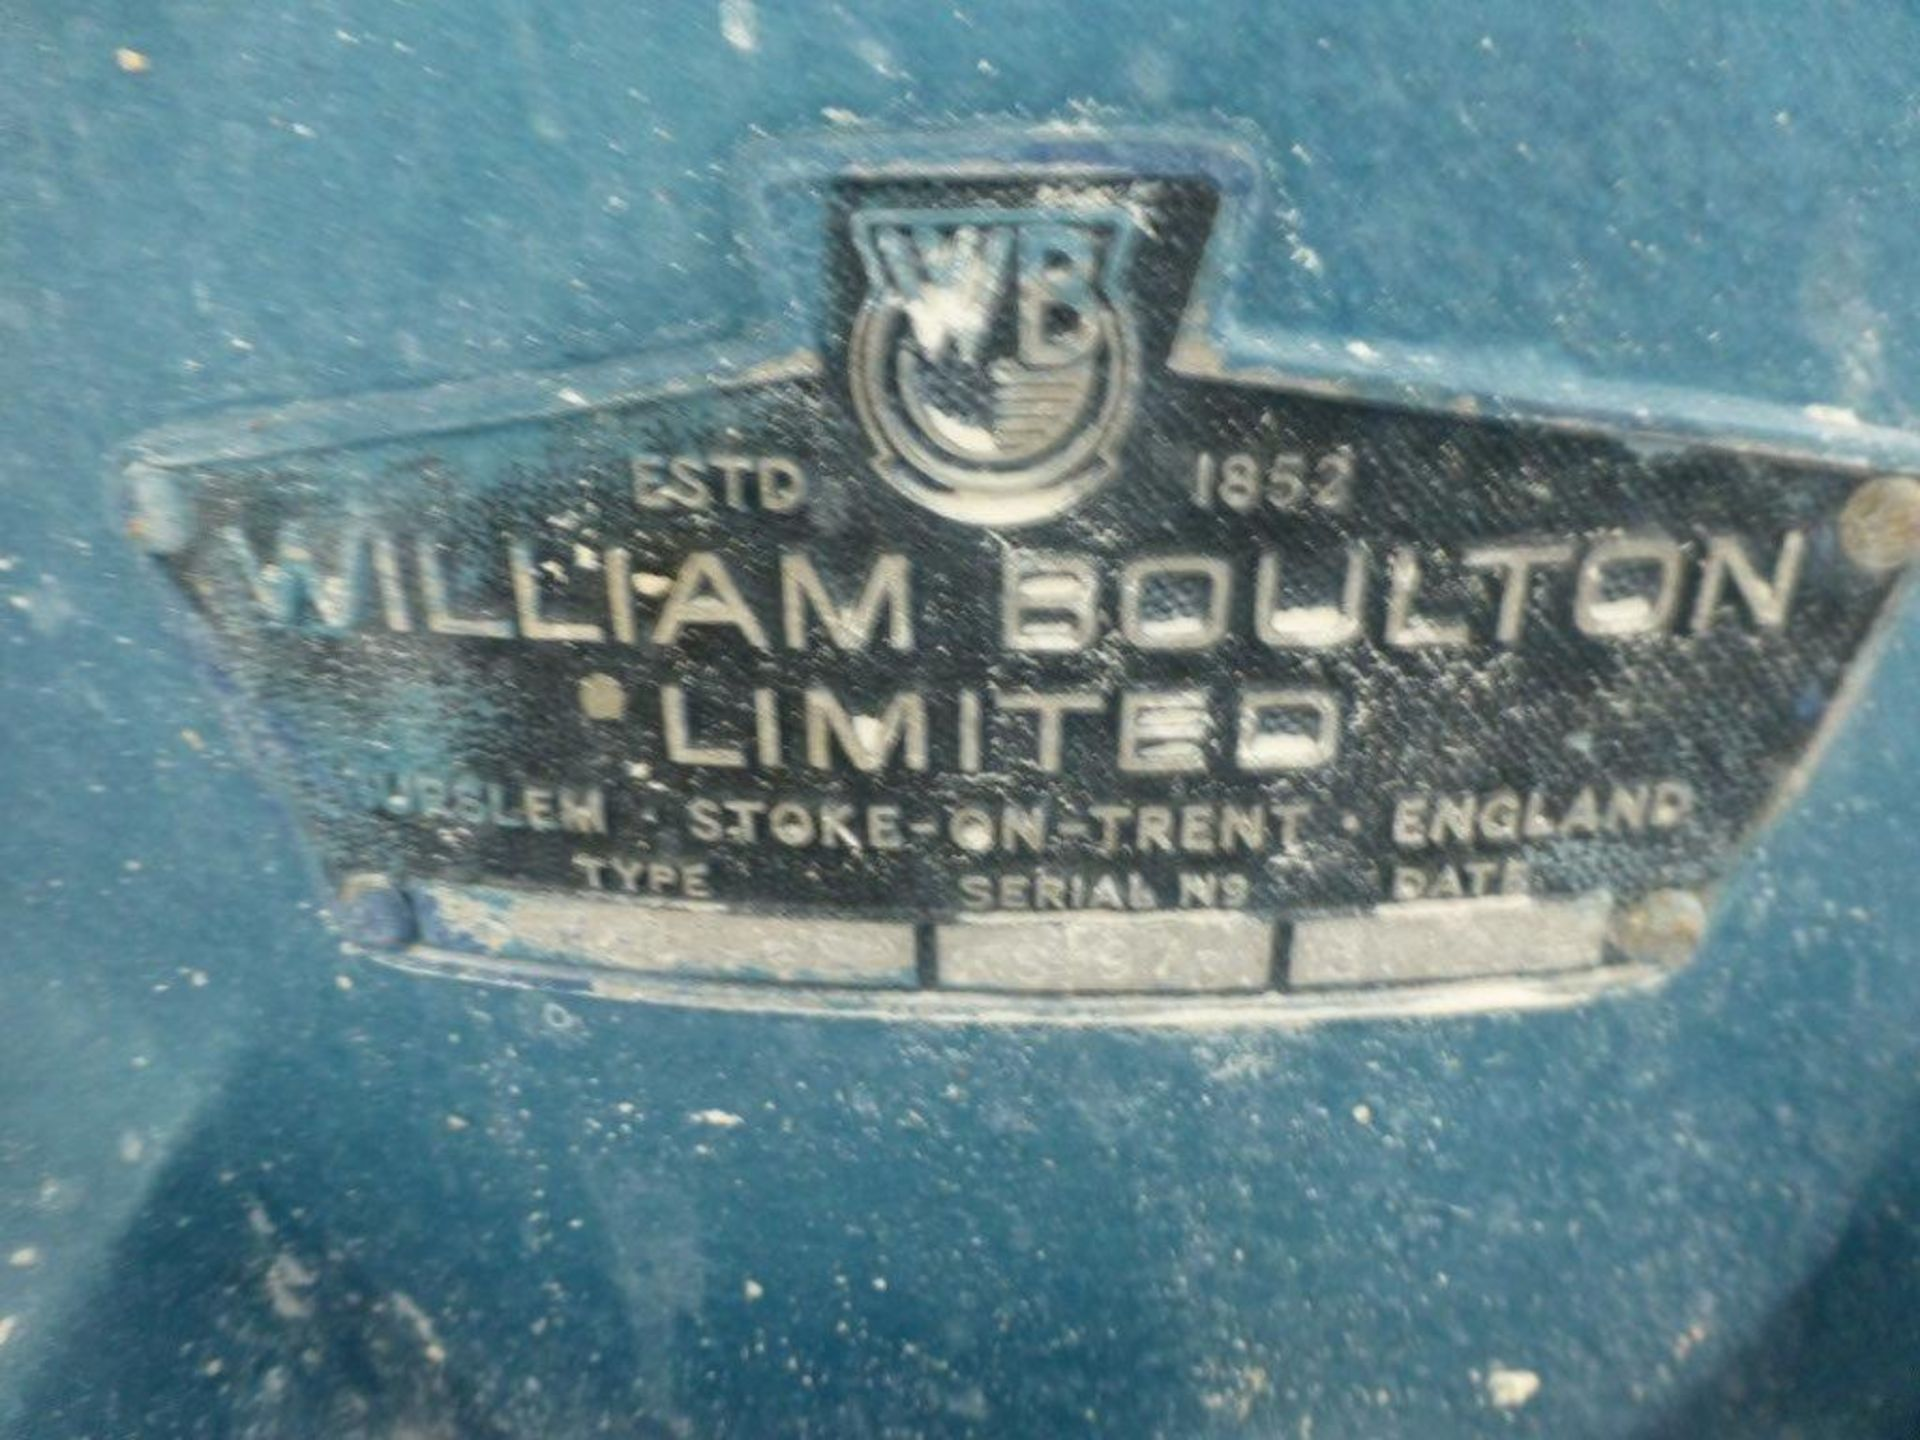 Lot 21 - William Boulton HS-Blunger, VIT clay blunger serial No FS-9731, Plant No SHB1 CHINA CLAY BLUNGER 1